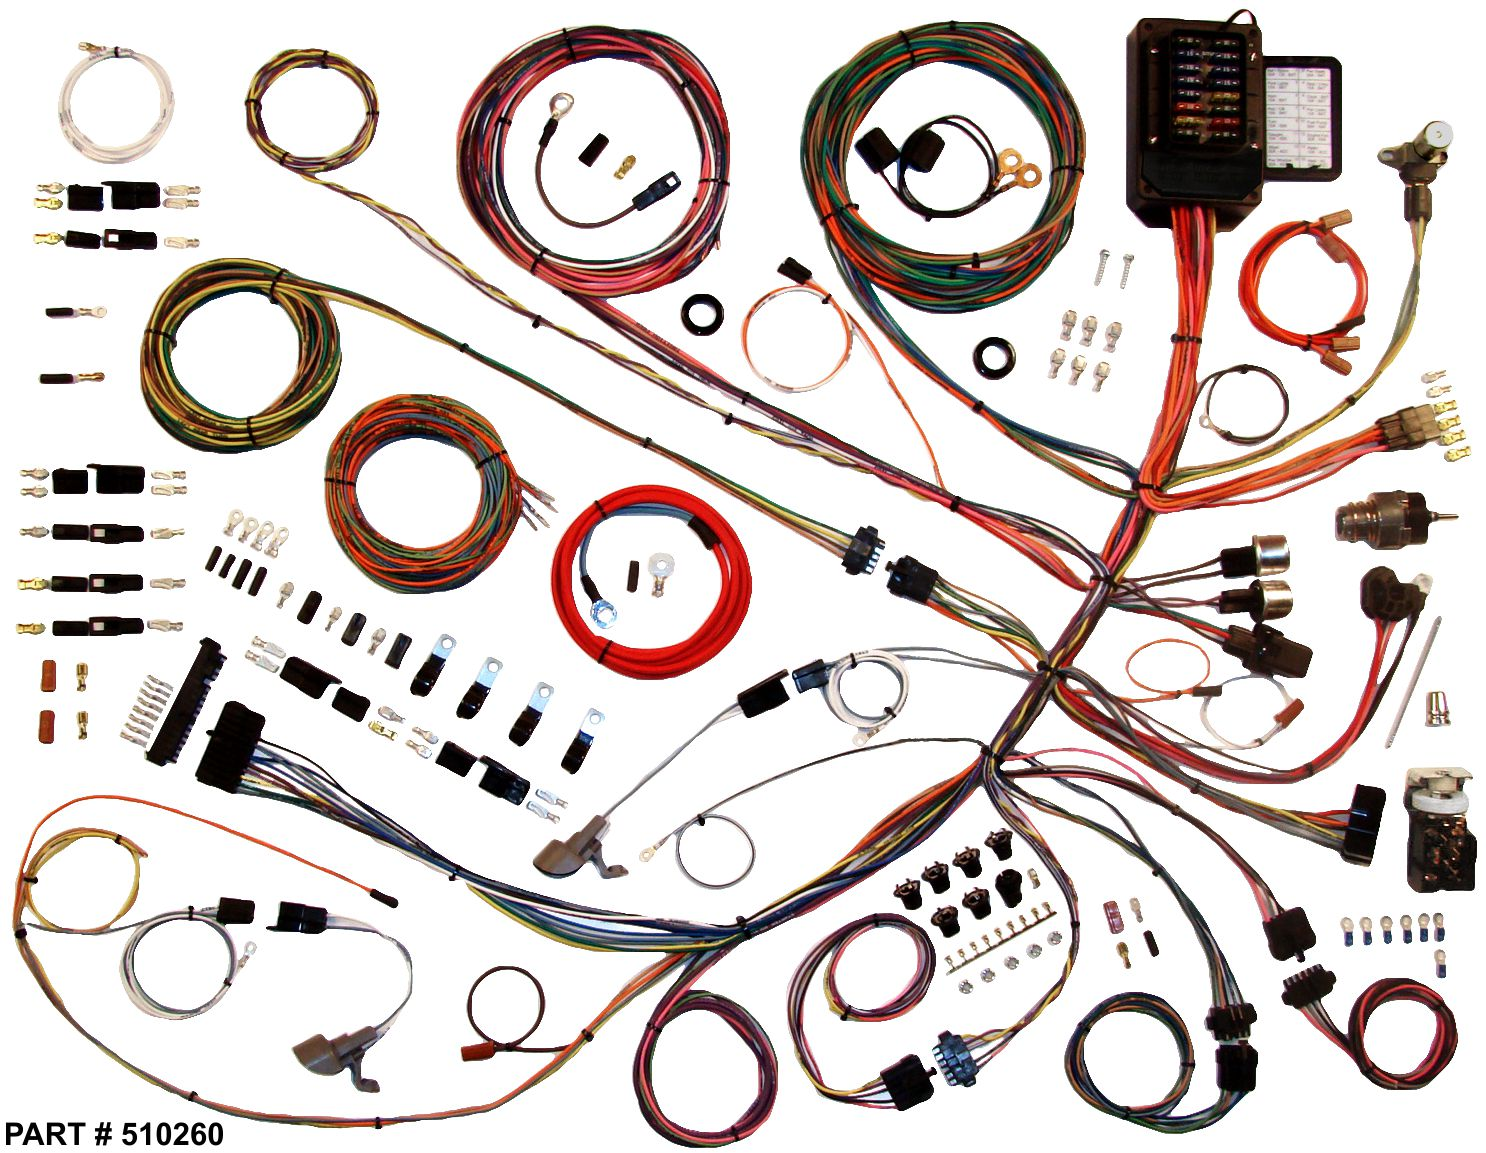 1961 - 1966 Ford Trucks RestoMod Wiring System